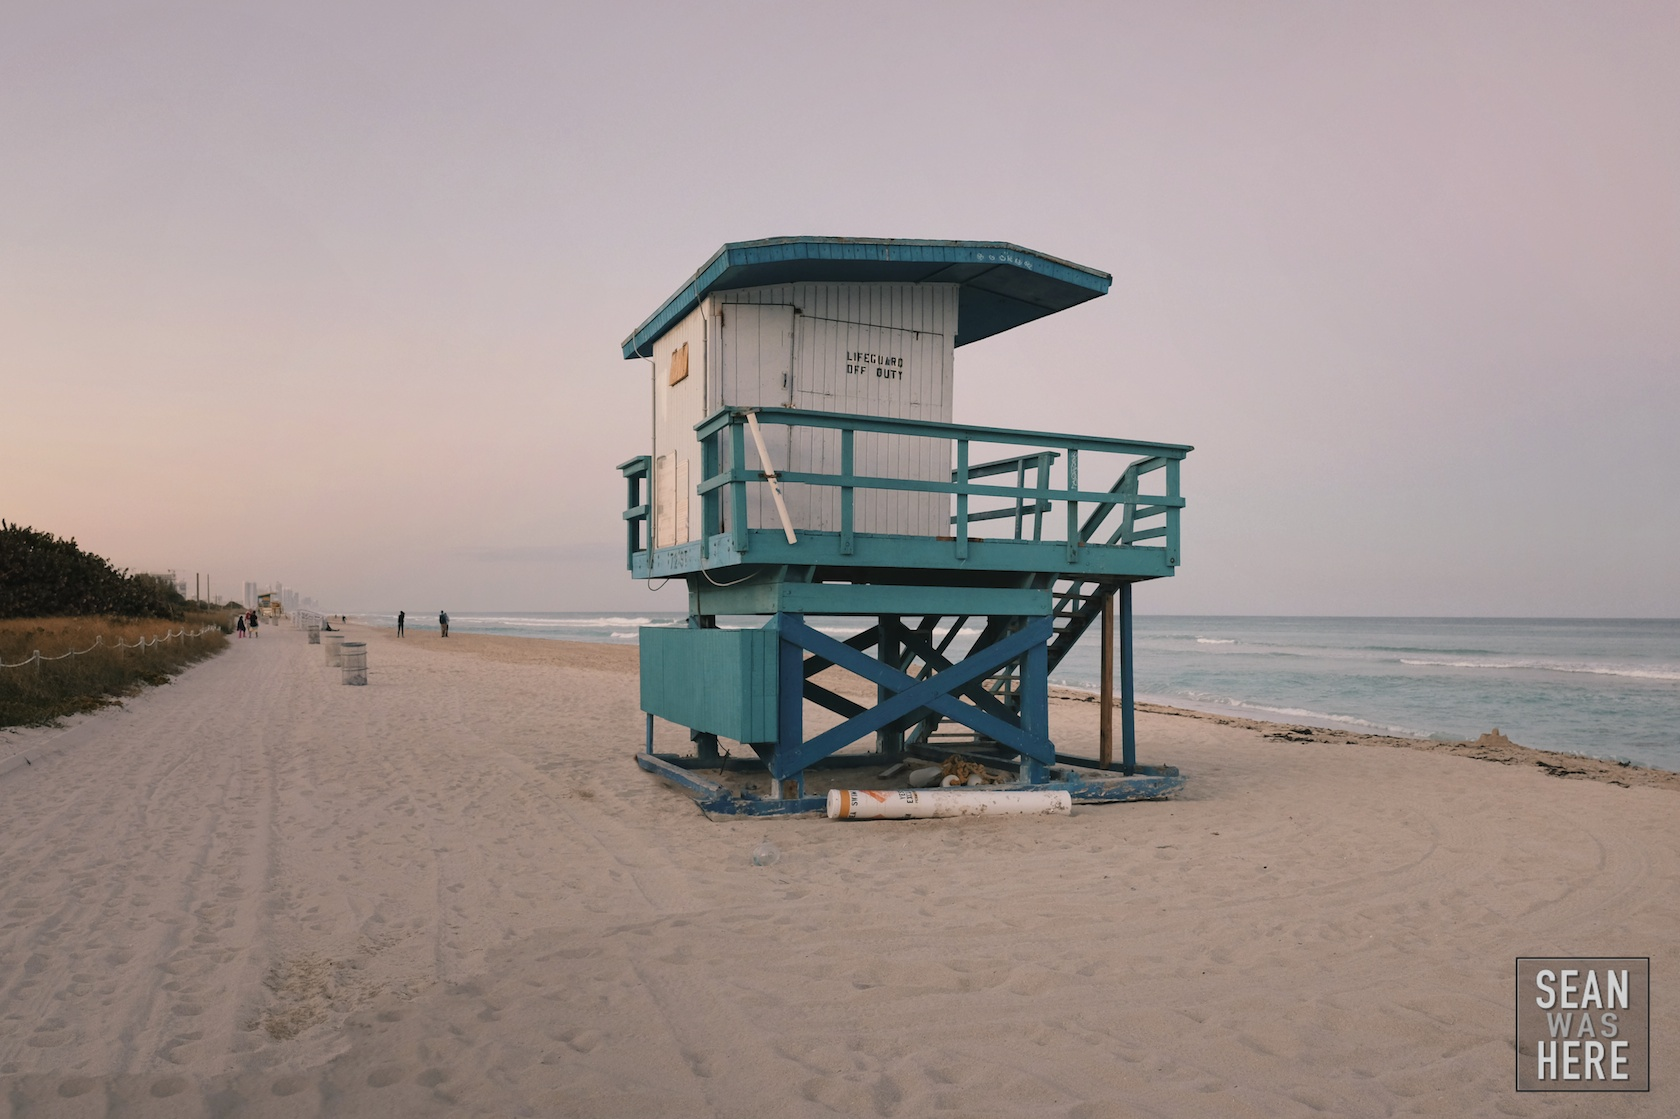 Miami Beach 72nd Street Lifeguard Stand